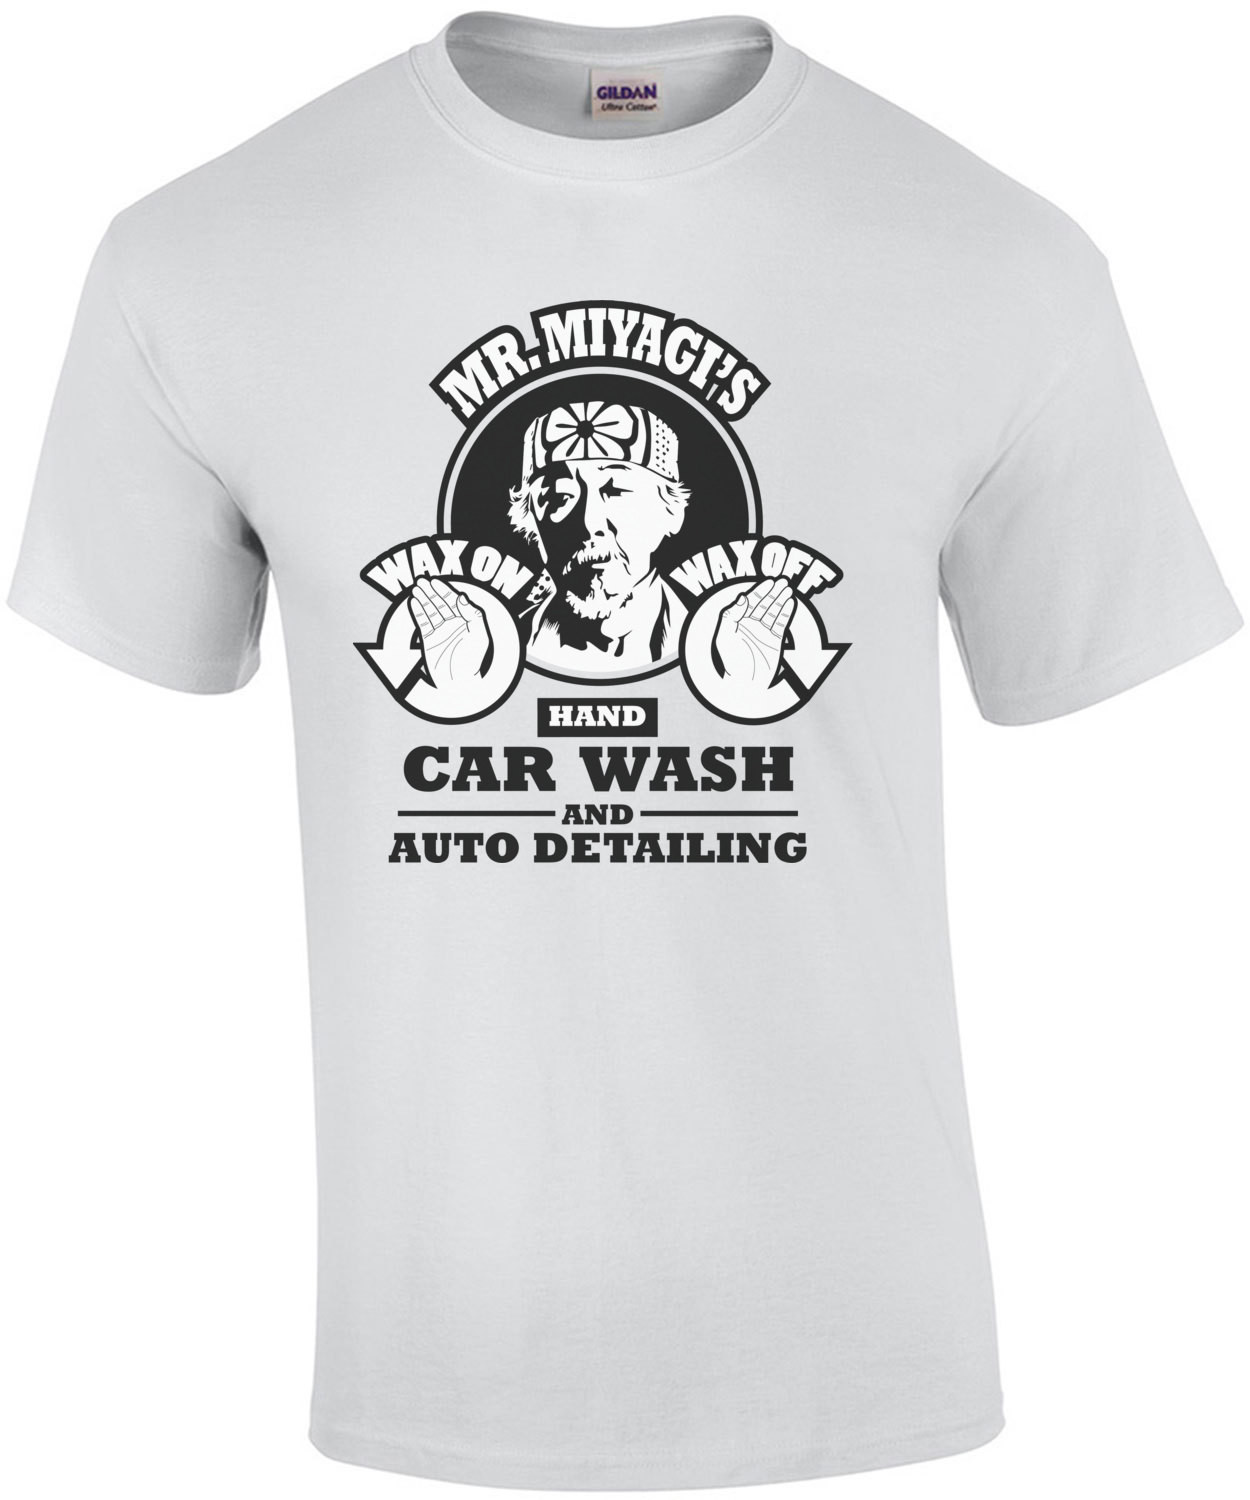 Mr. Miyagi's Hand Car Wash and Auto Detailing - Funny Karate Kid T-Shirt